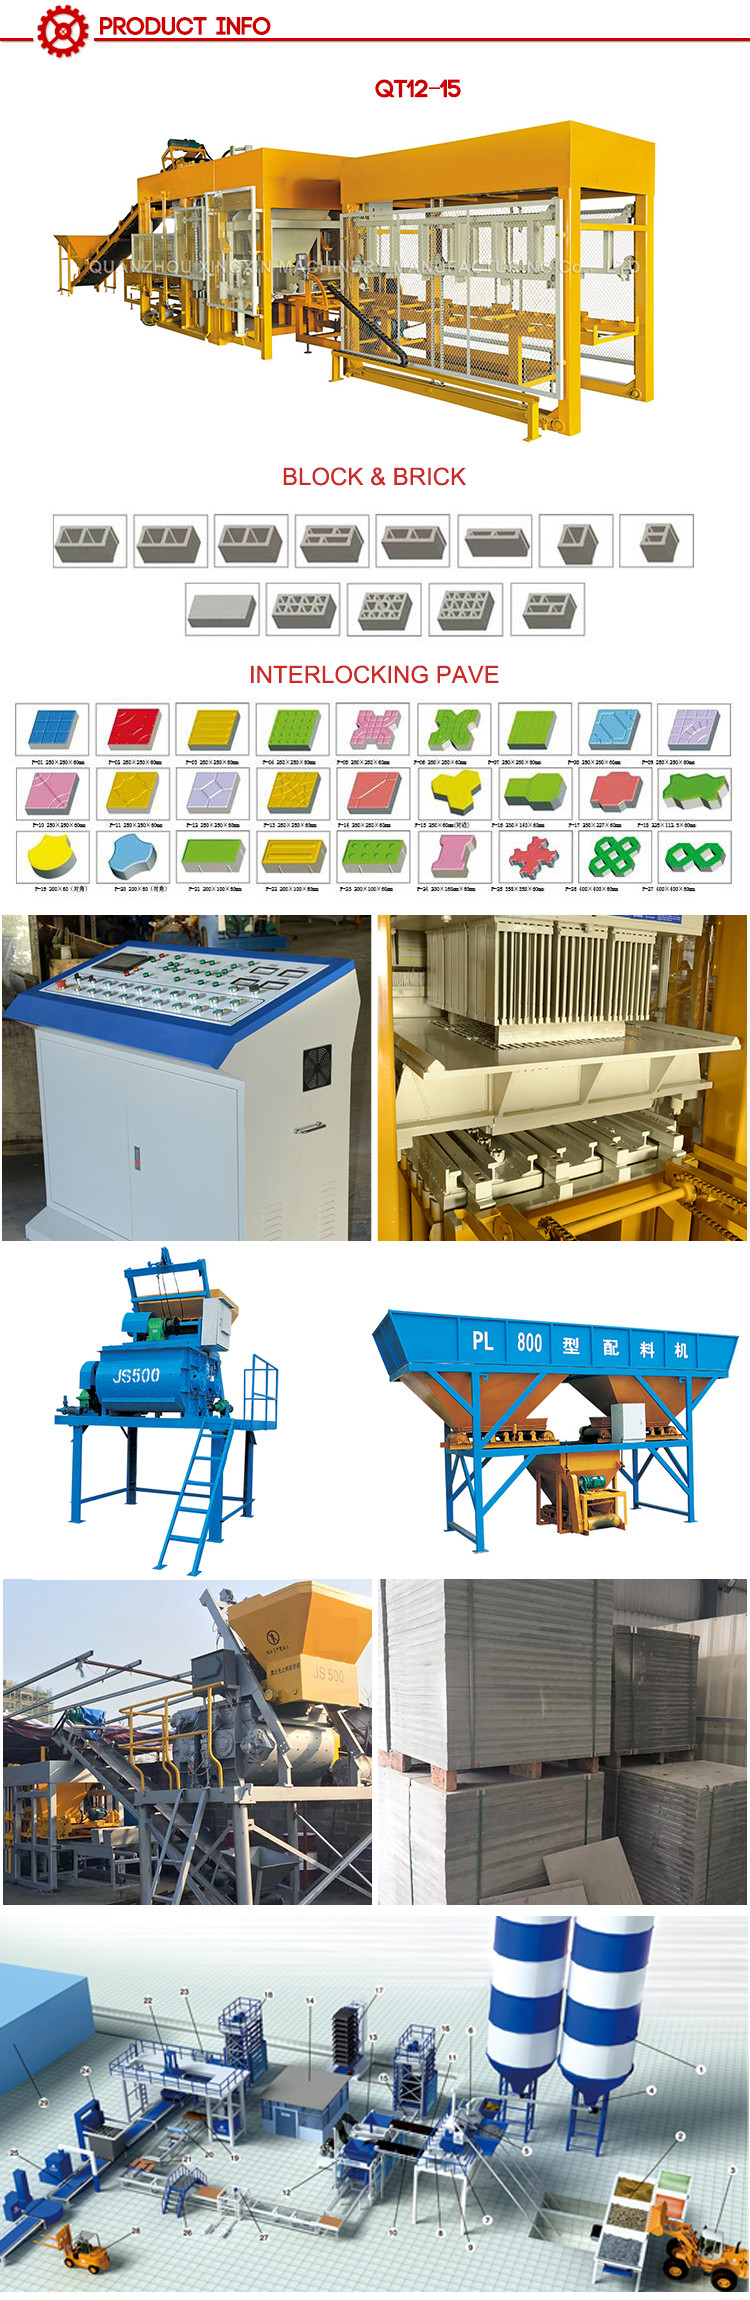 Concrete Brick Production Line Processing Aac Block Making Machine Concrete Blocks Making Machine